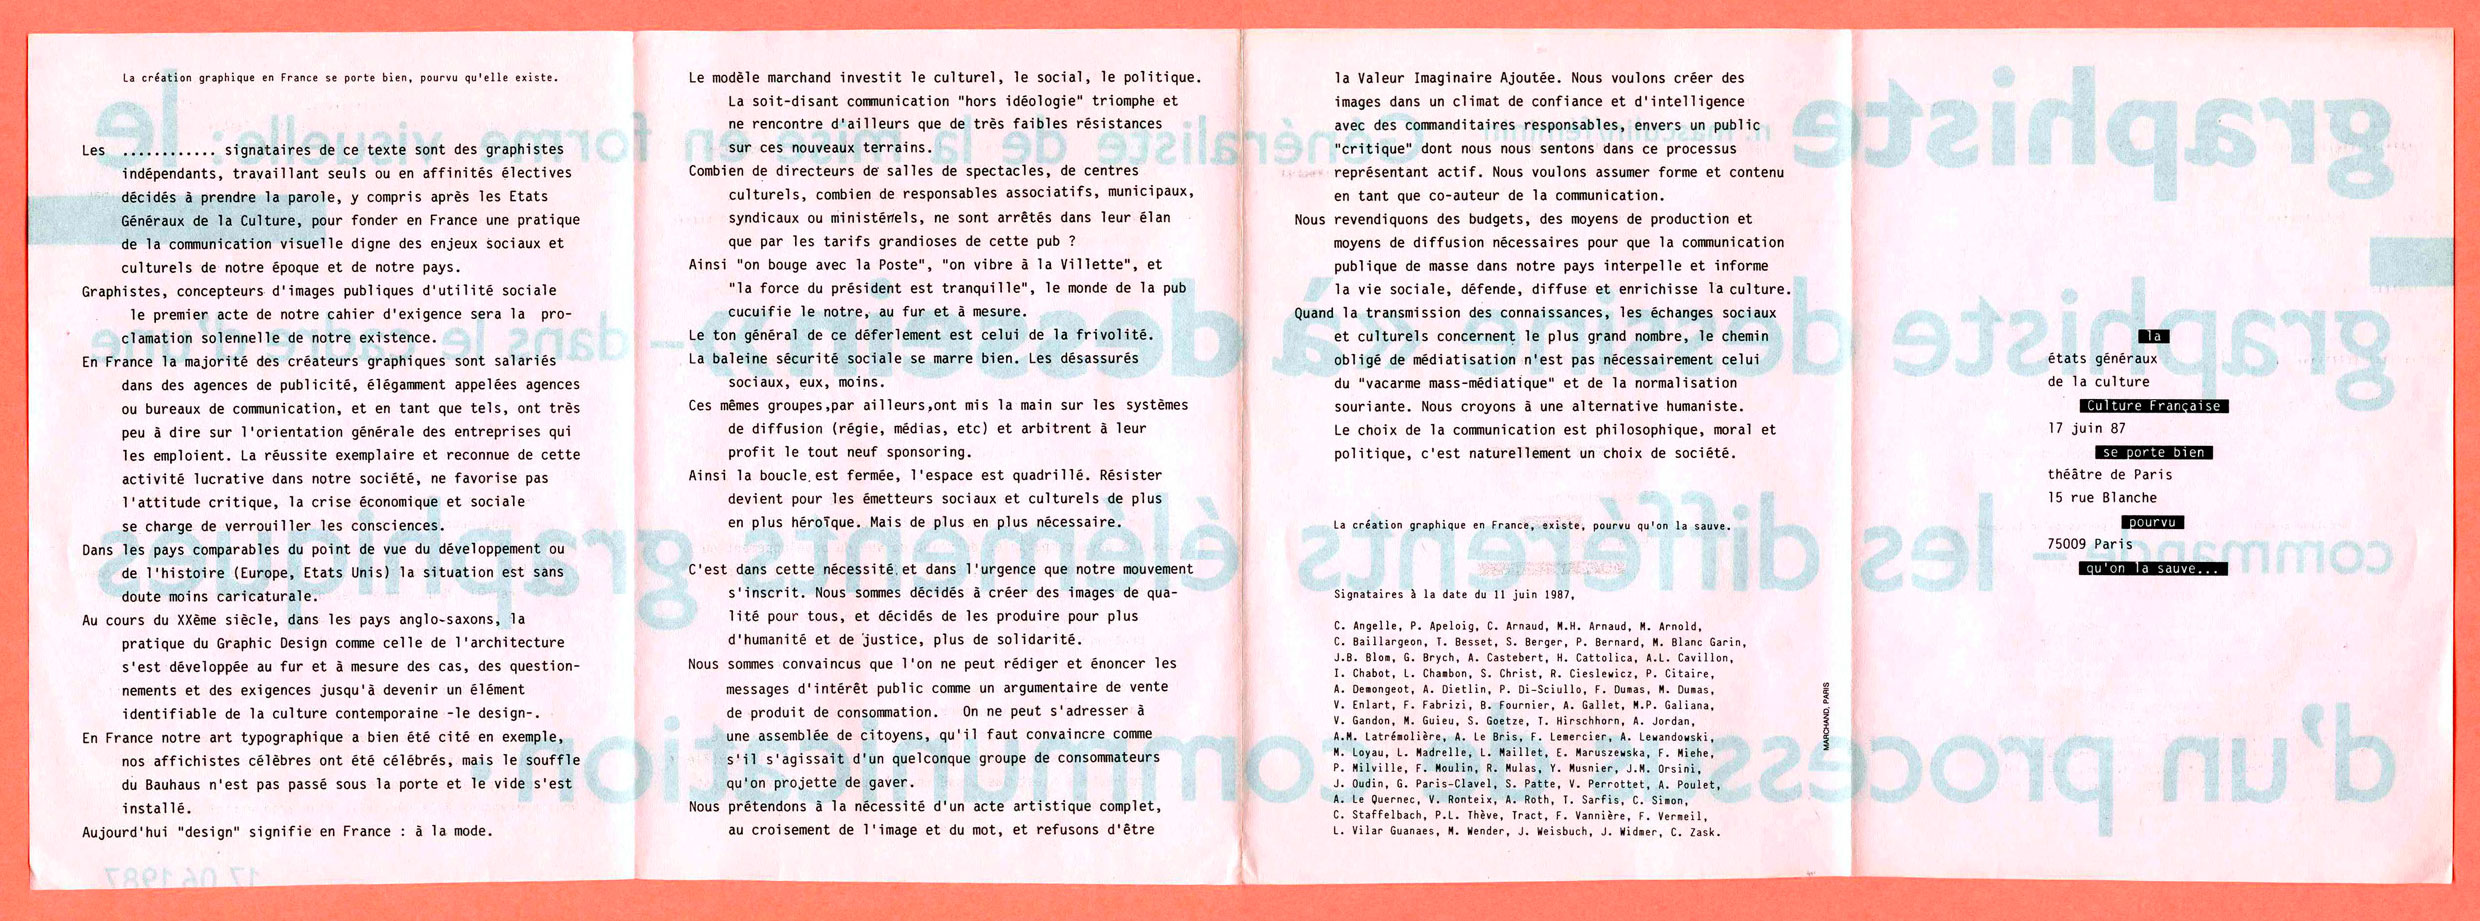 definition-graphiste-etats-generaux-de-la-culture-en-1987-01